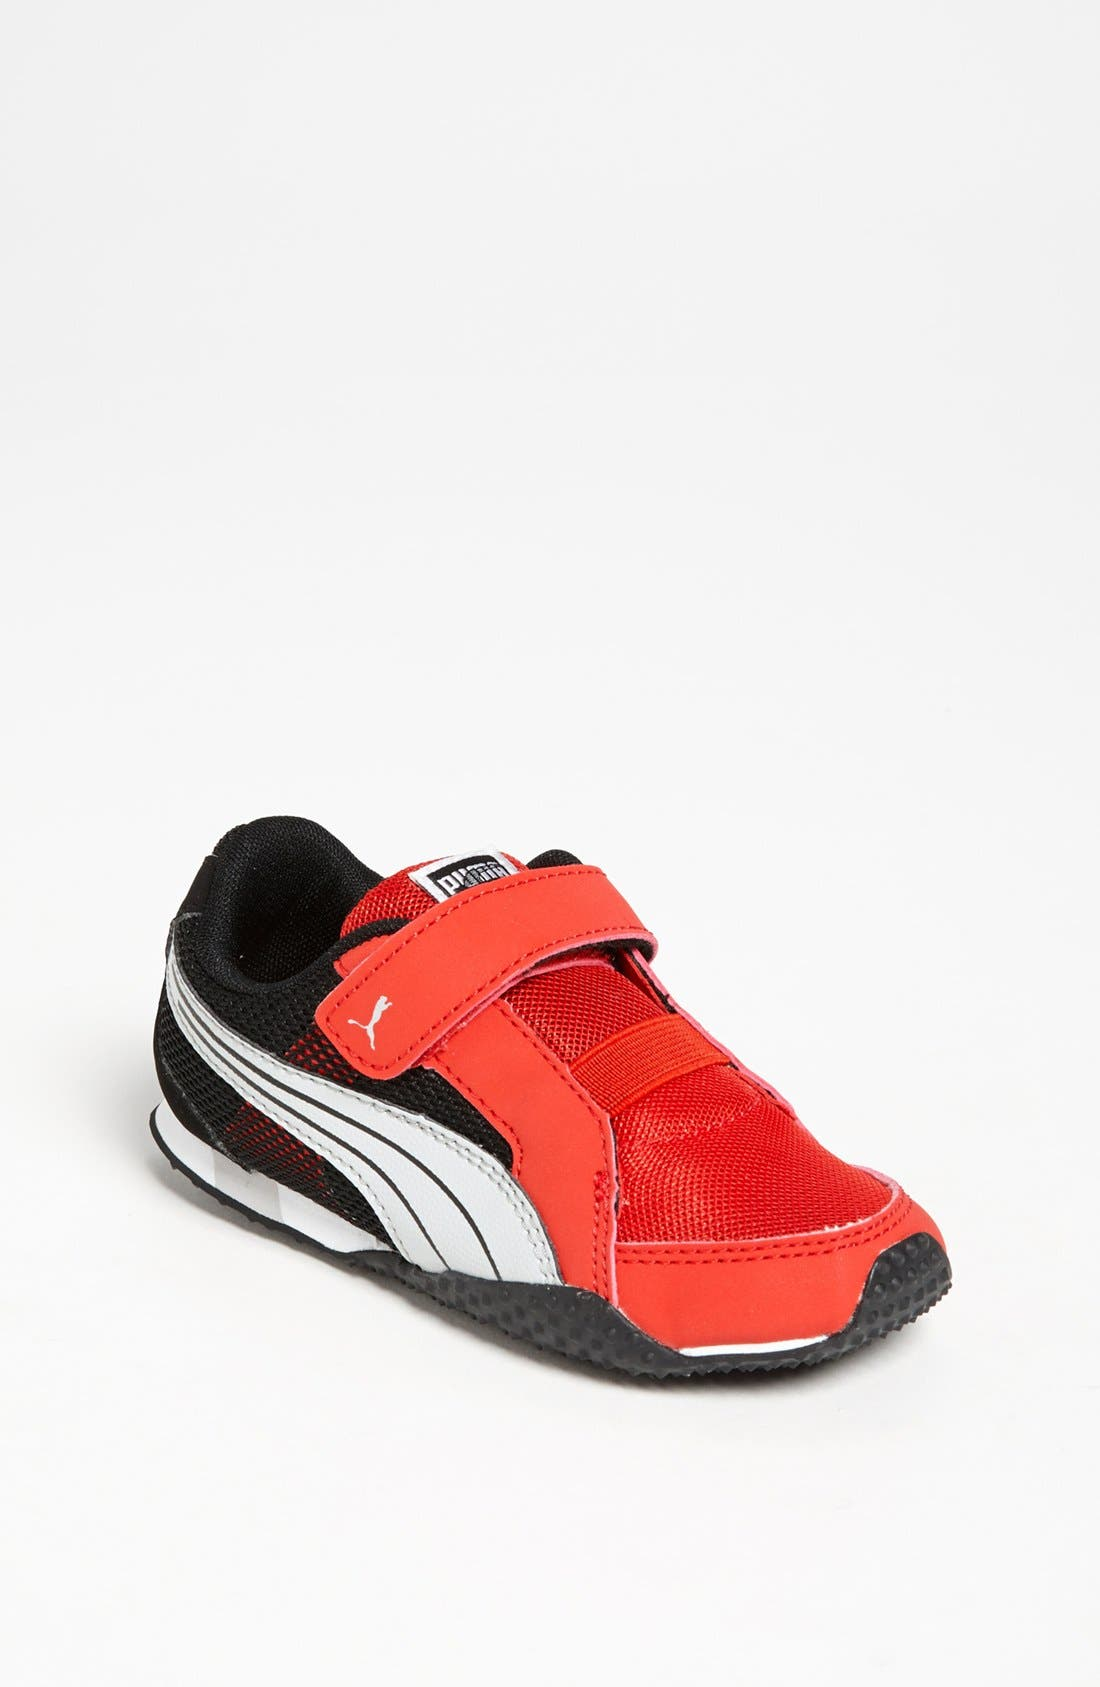 Alternate Image 1 Selected - PUMA 'H-Mesh V' Sneaker (Baby, Walker, Toddler, Little Kid & Big Kid)